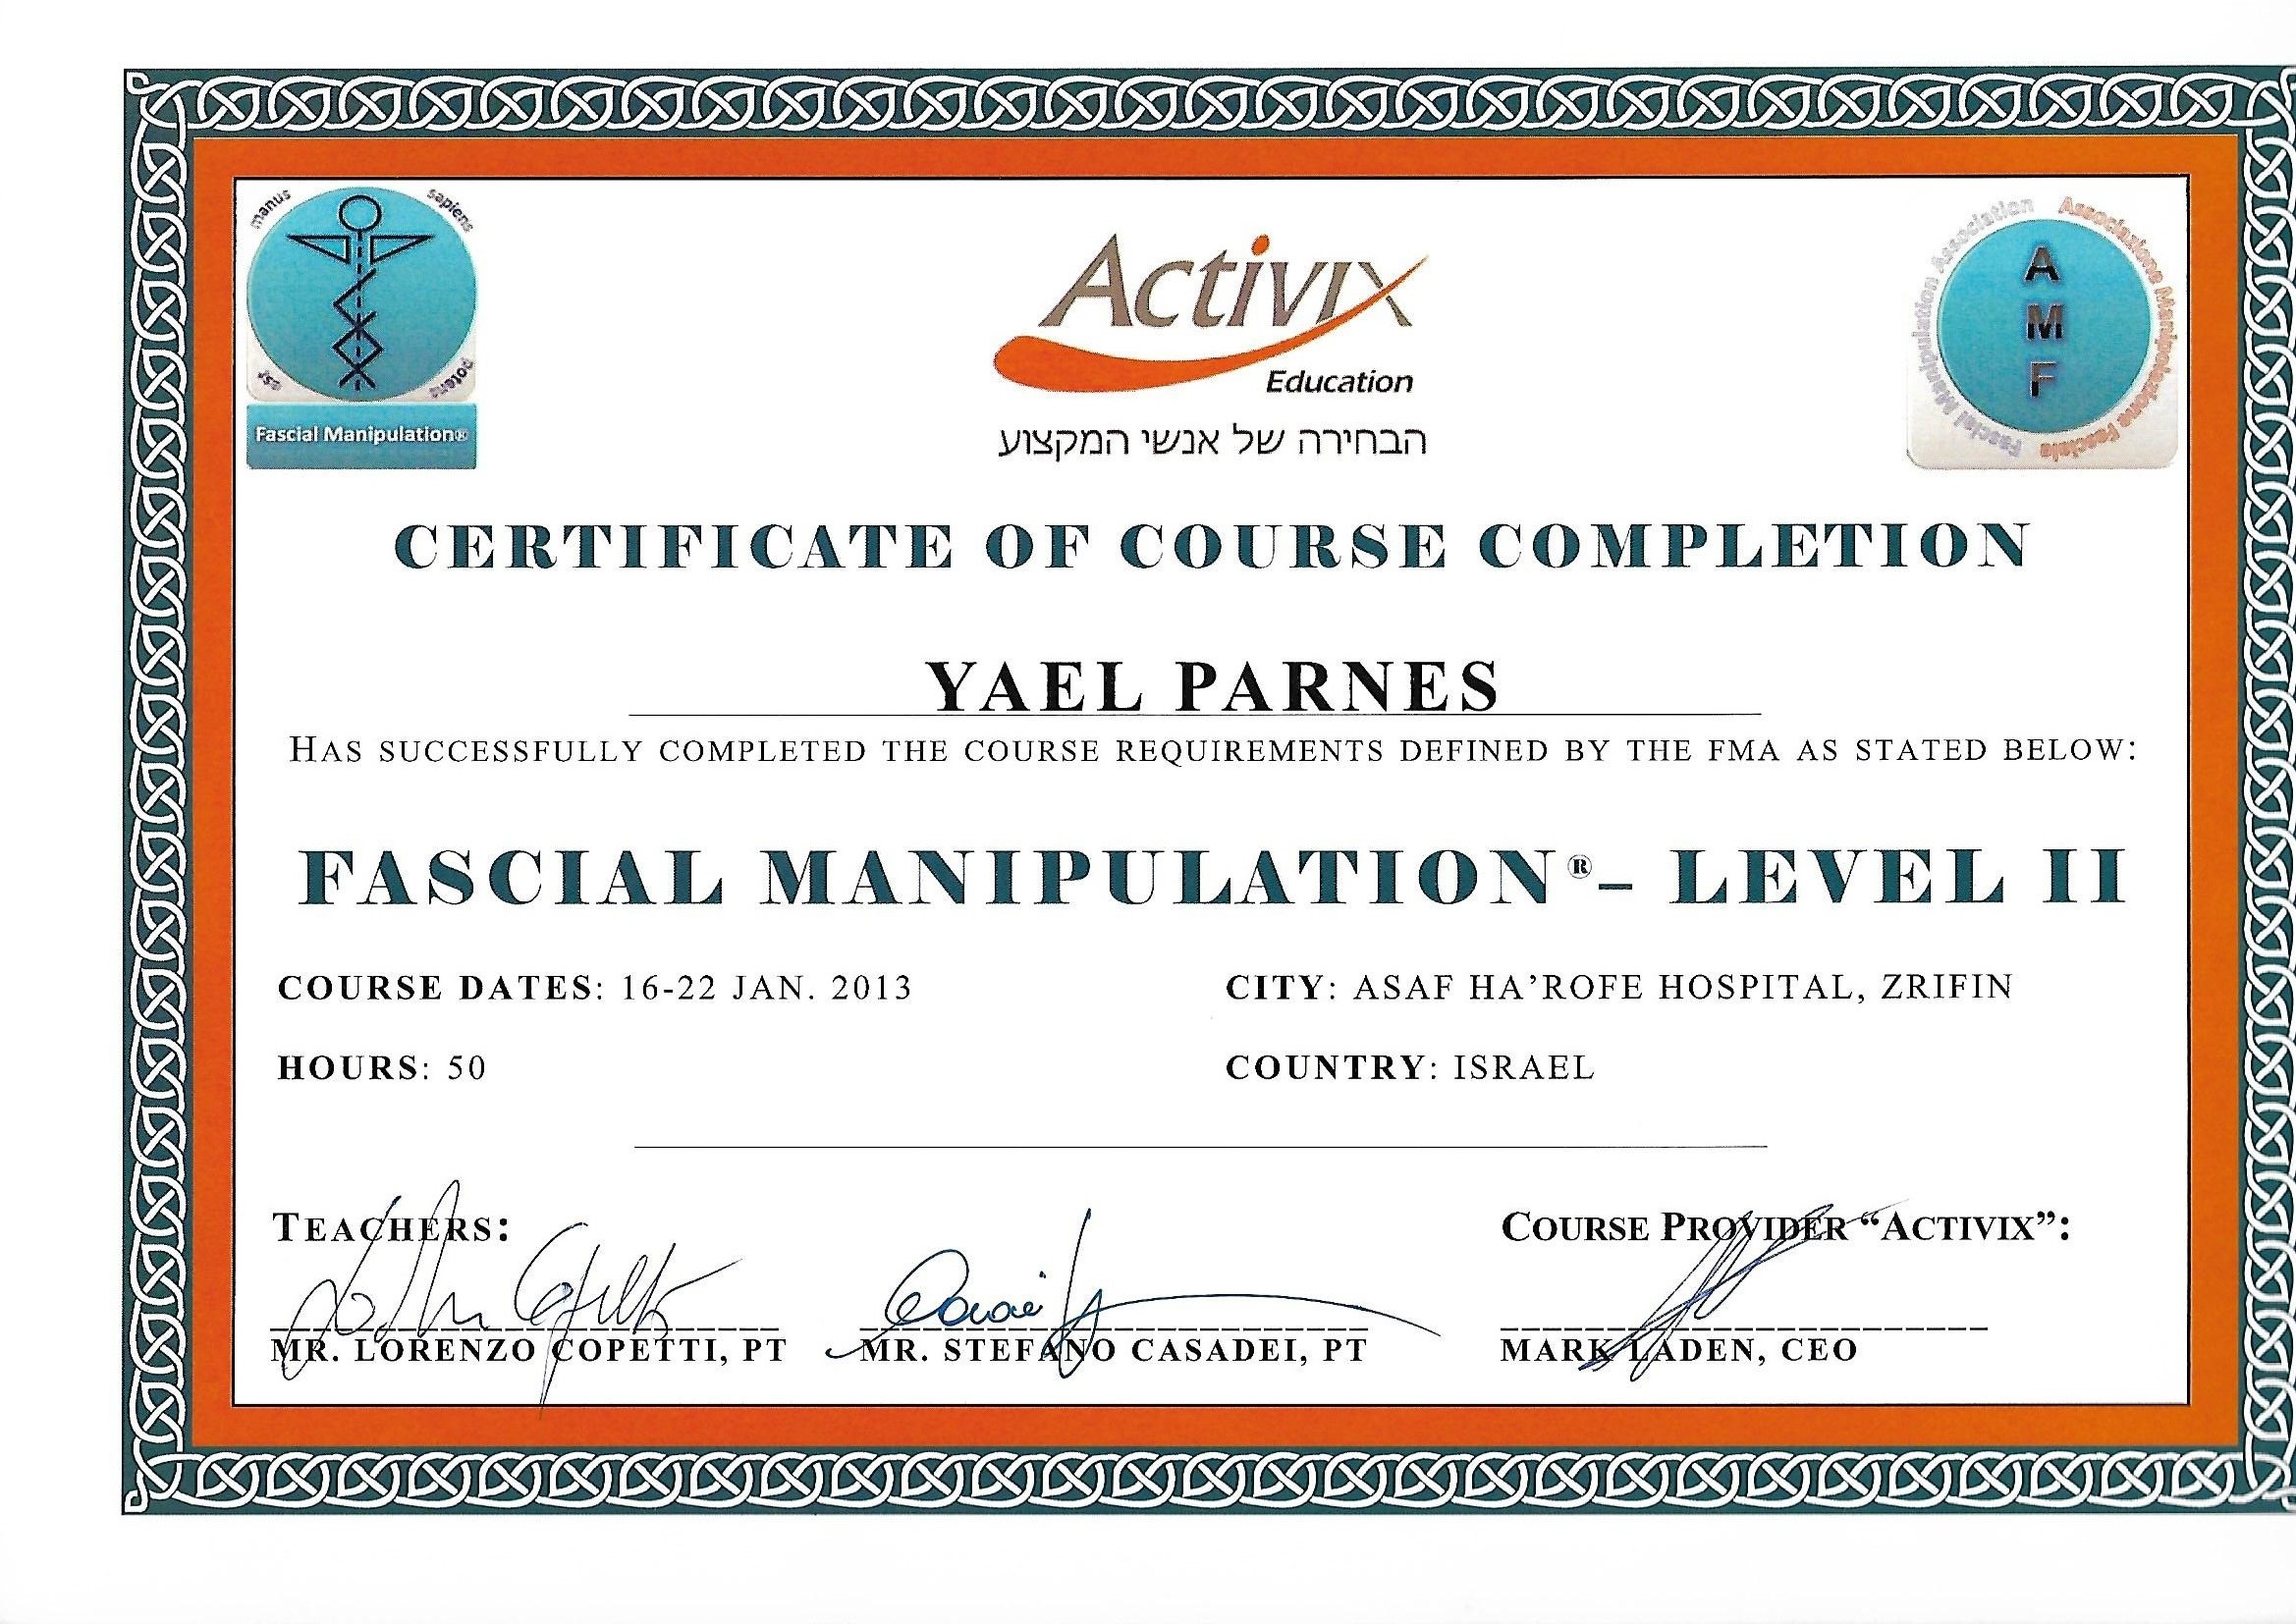 FASCIAL MANIPULATON - LEVEL II